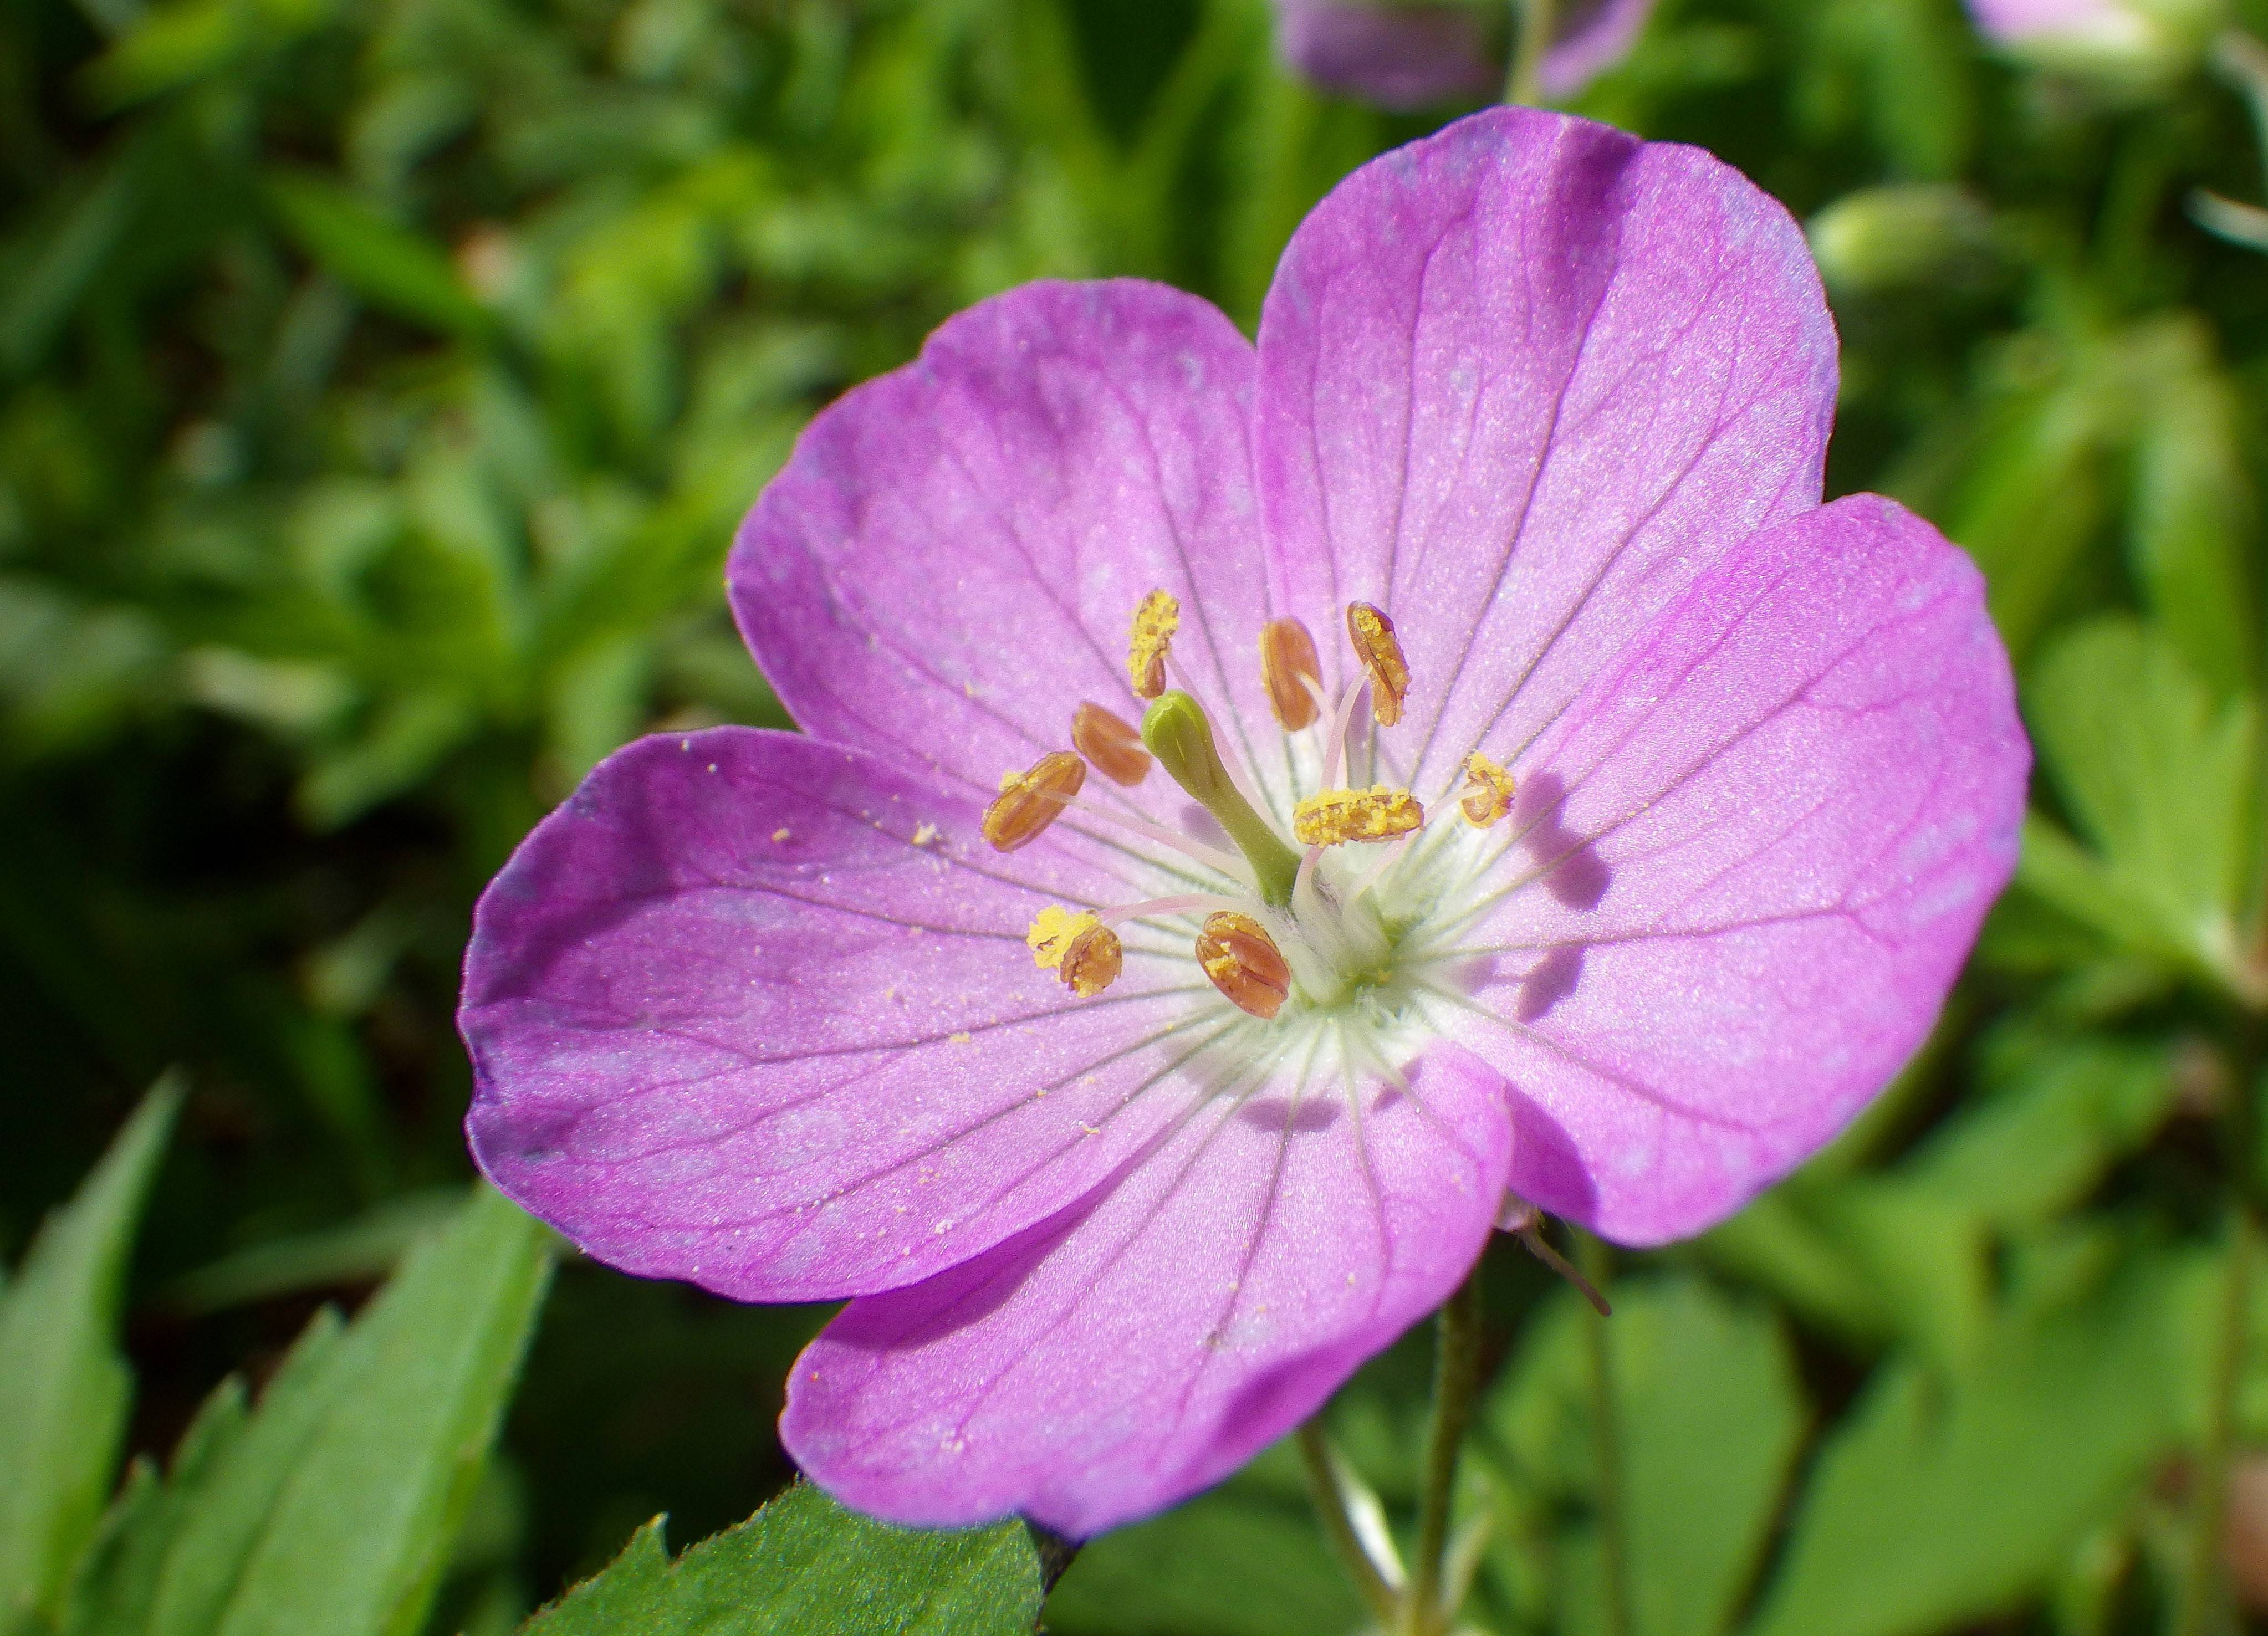 The wild geranium is a native Illinois wildflower of open woods and savannas.